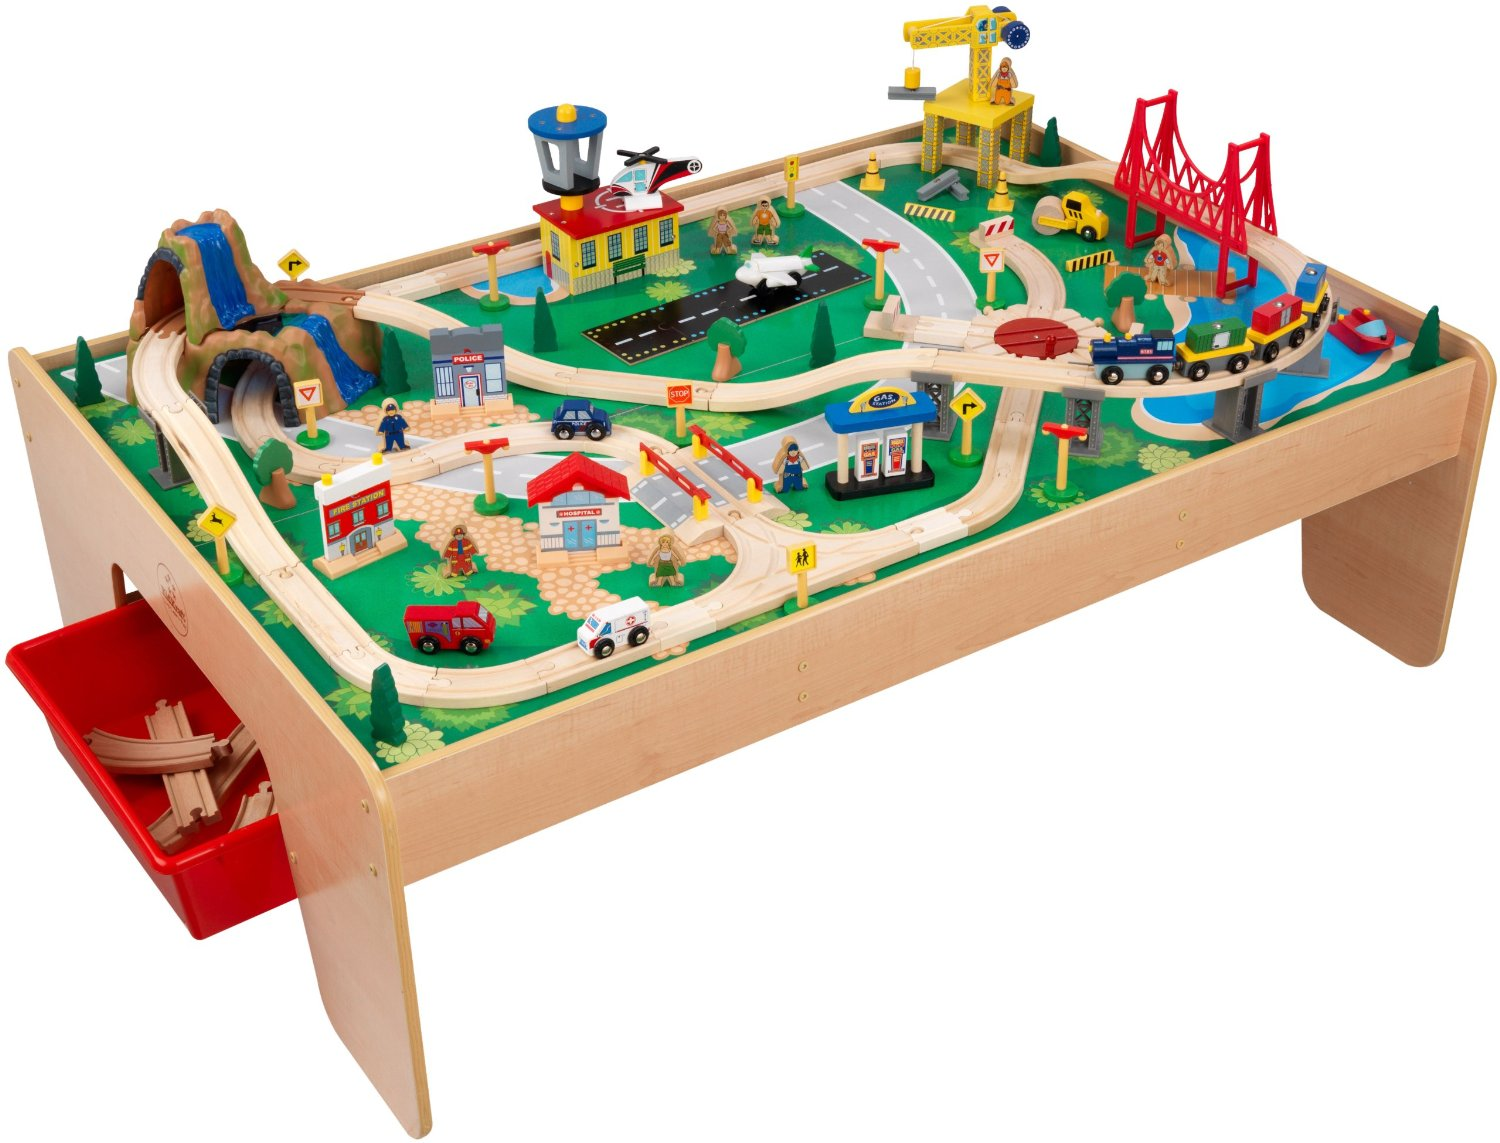 sc 1 st  Walmart & KidKraft Waterfall Mountain Train Set and Table - Walmart.com